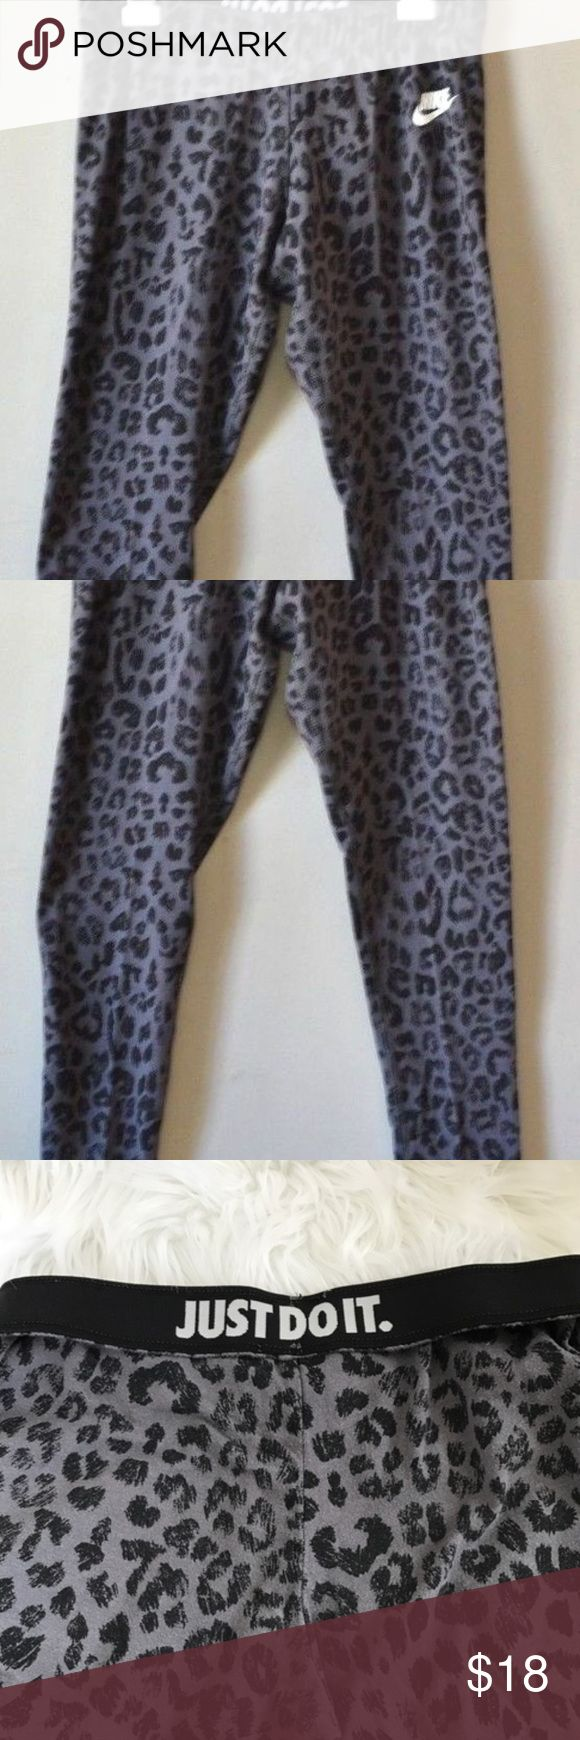 Nike leopard yoga pants Worn a couple times but still look great Nike Pants Leggings